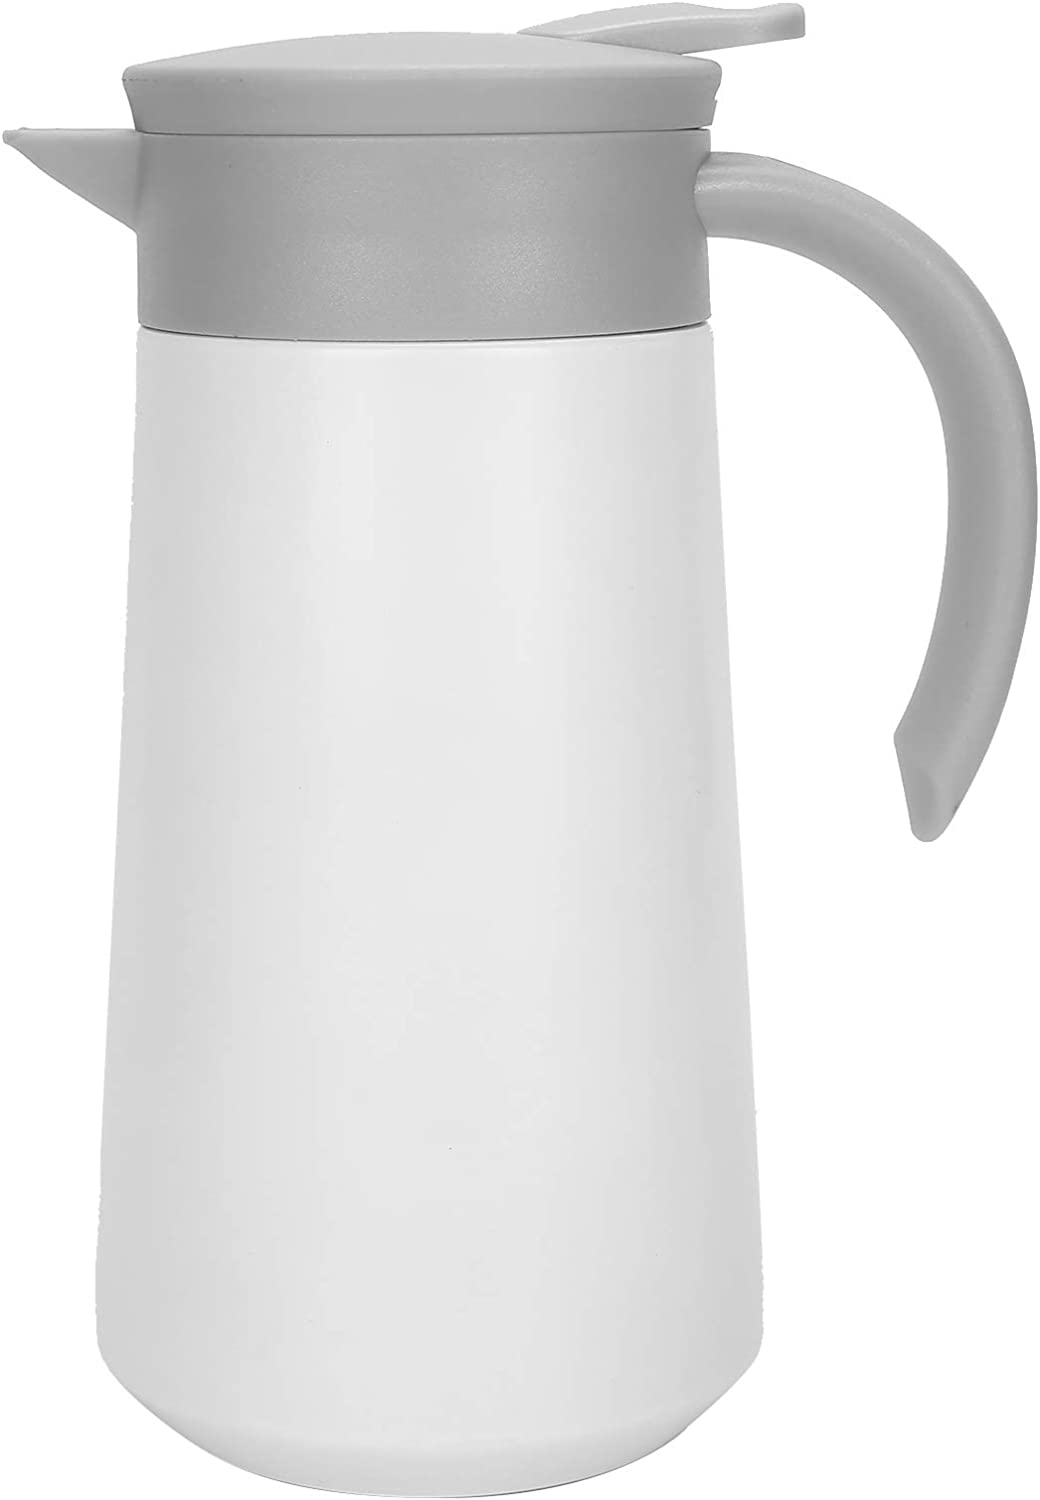 800ML Thermal Jug Super beauty product restock quality Max 65% OFF top Large Capacity Liner Insulated Steel Stainless